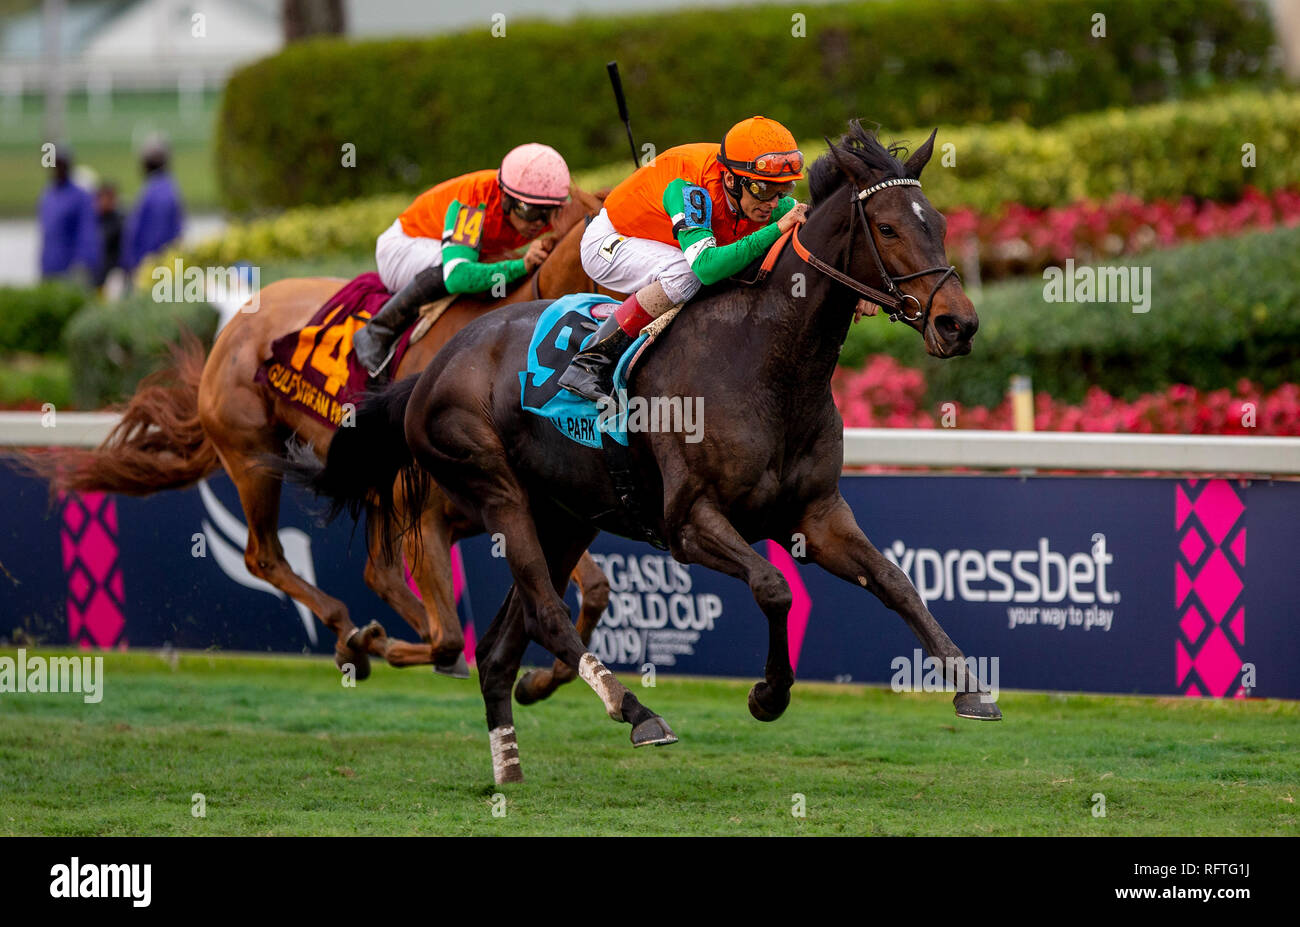 Florida, USA. 26th January 2019.Dolce Lili, #9, ridden by jockey John R. Velazquez, wins an undercard race at the Pegasus World Cup on January 26, 2019 at Gulfstream Park in Hallandale Beach, Florida. Kaz Ishida/Eclipse Sportswire/CSM/Alamy Live News - Stock Image